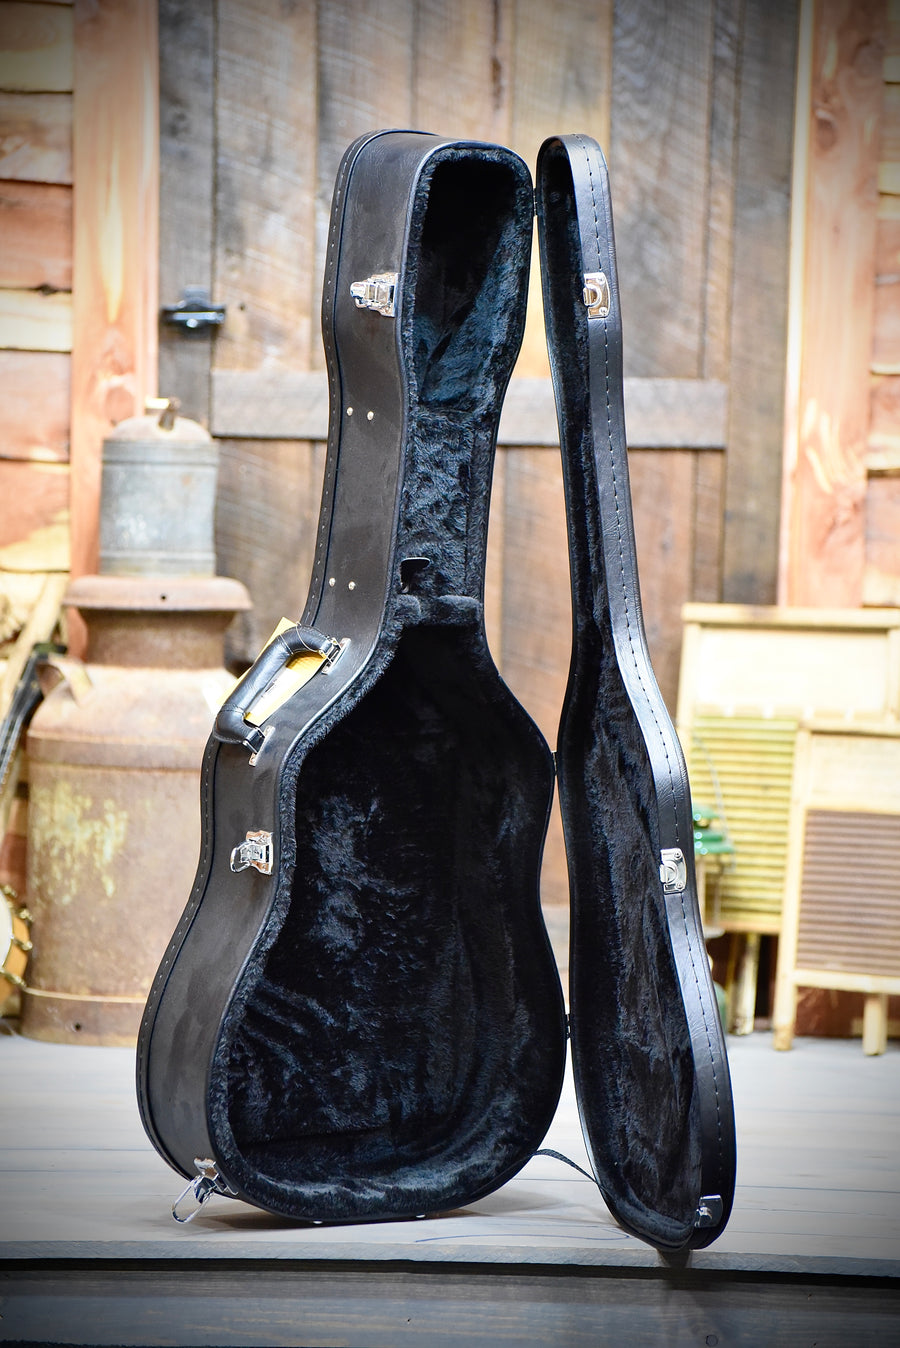 Guardian CG-022-D Dreadnought Acoustic Guitar Case